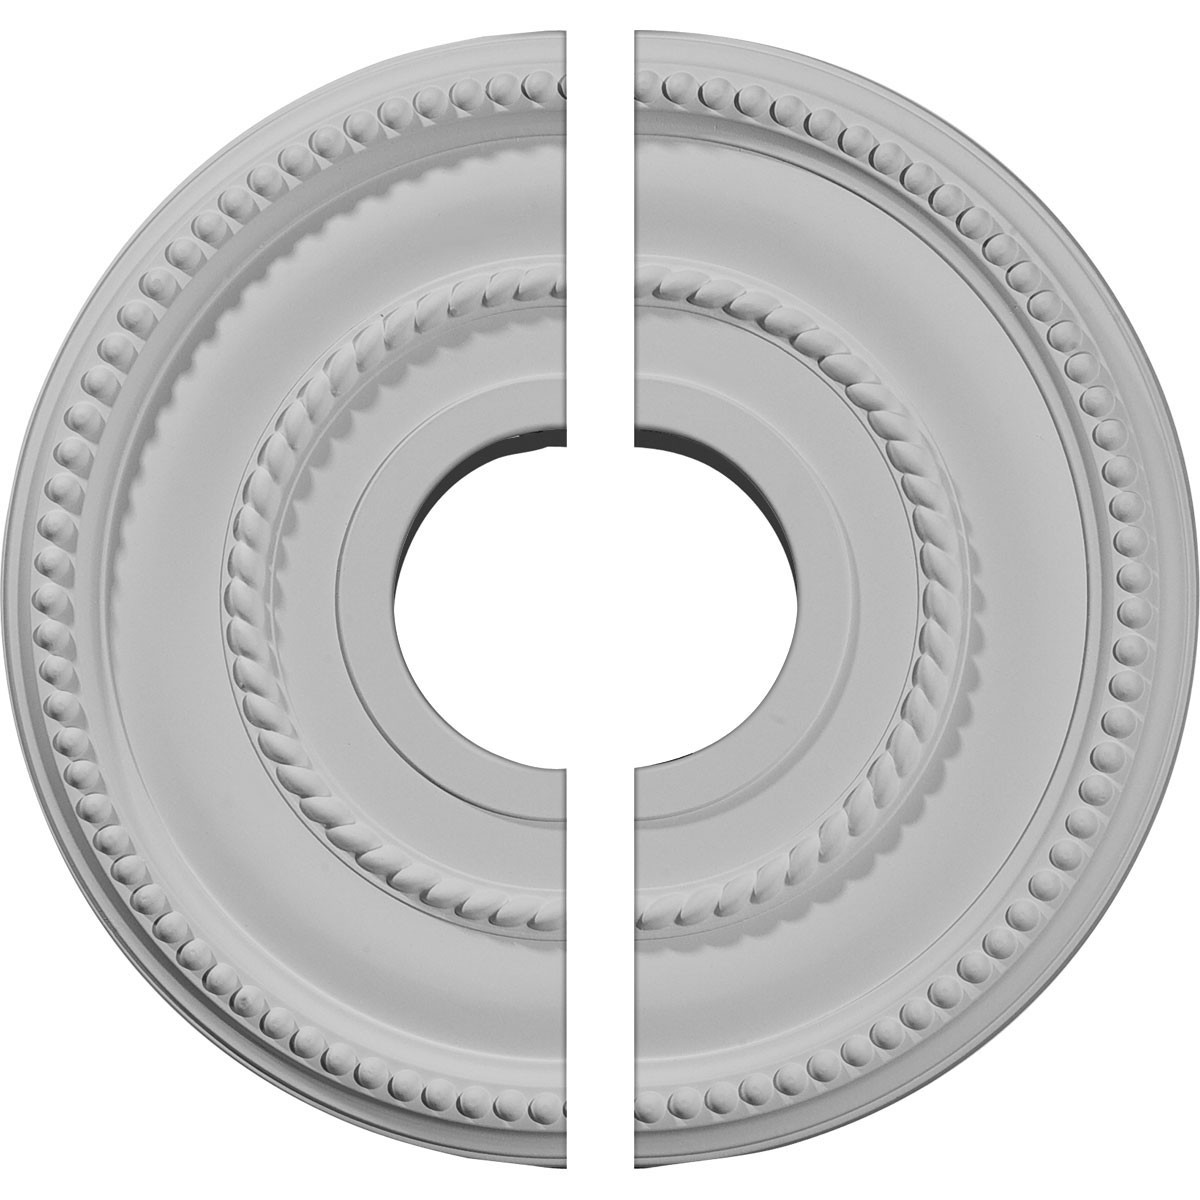 "EM-CM12VA2 - 12 1/8""OD x 3 5/8""ID x 3/4""P Valeriano Ceiling Medallion, Two Piece (Fits Canopies up to 6 1/4"")"